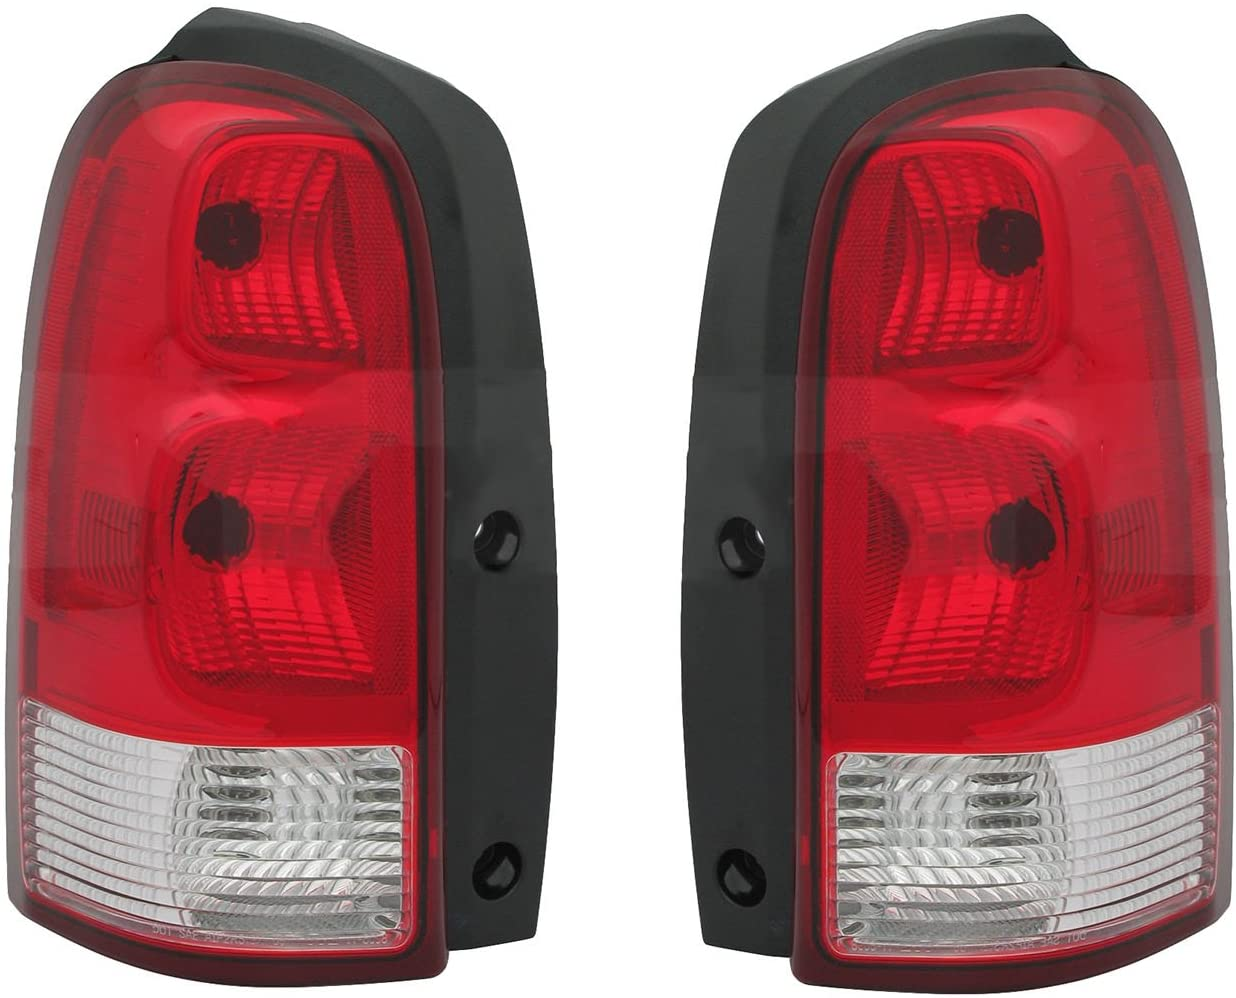 Rareelectrical NEW PAIR OF TAIL LIGHTS COMPATIBLE WITH CHEVROLET UPLANDER 2005-2009 GM2801183 GM2800183 15787131 15787132